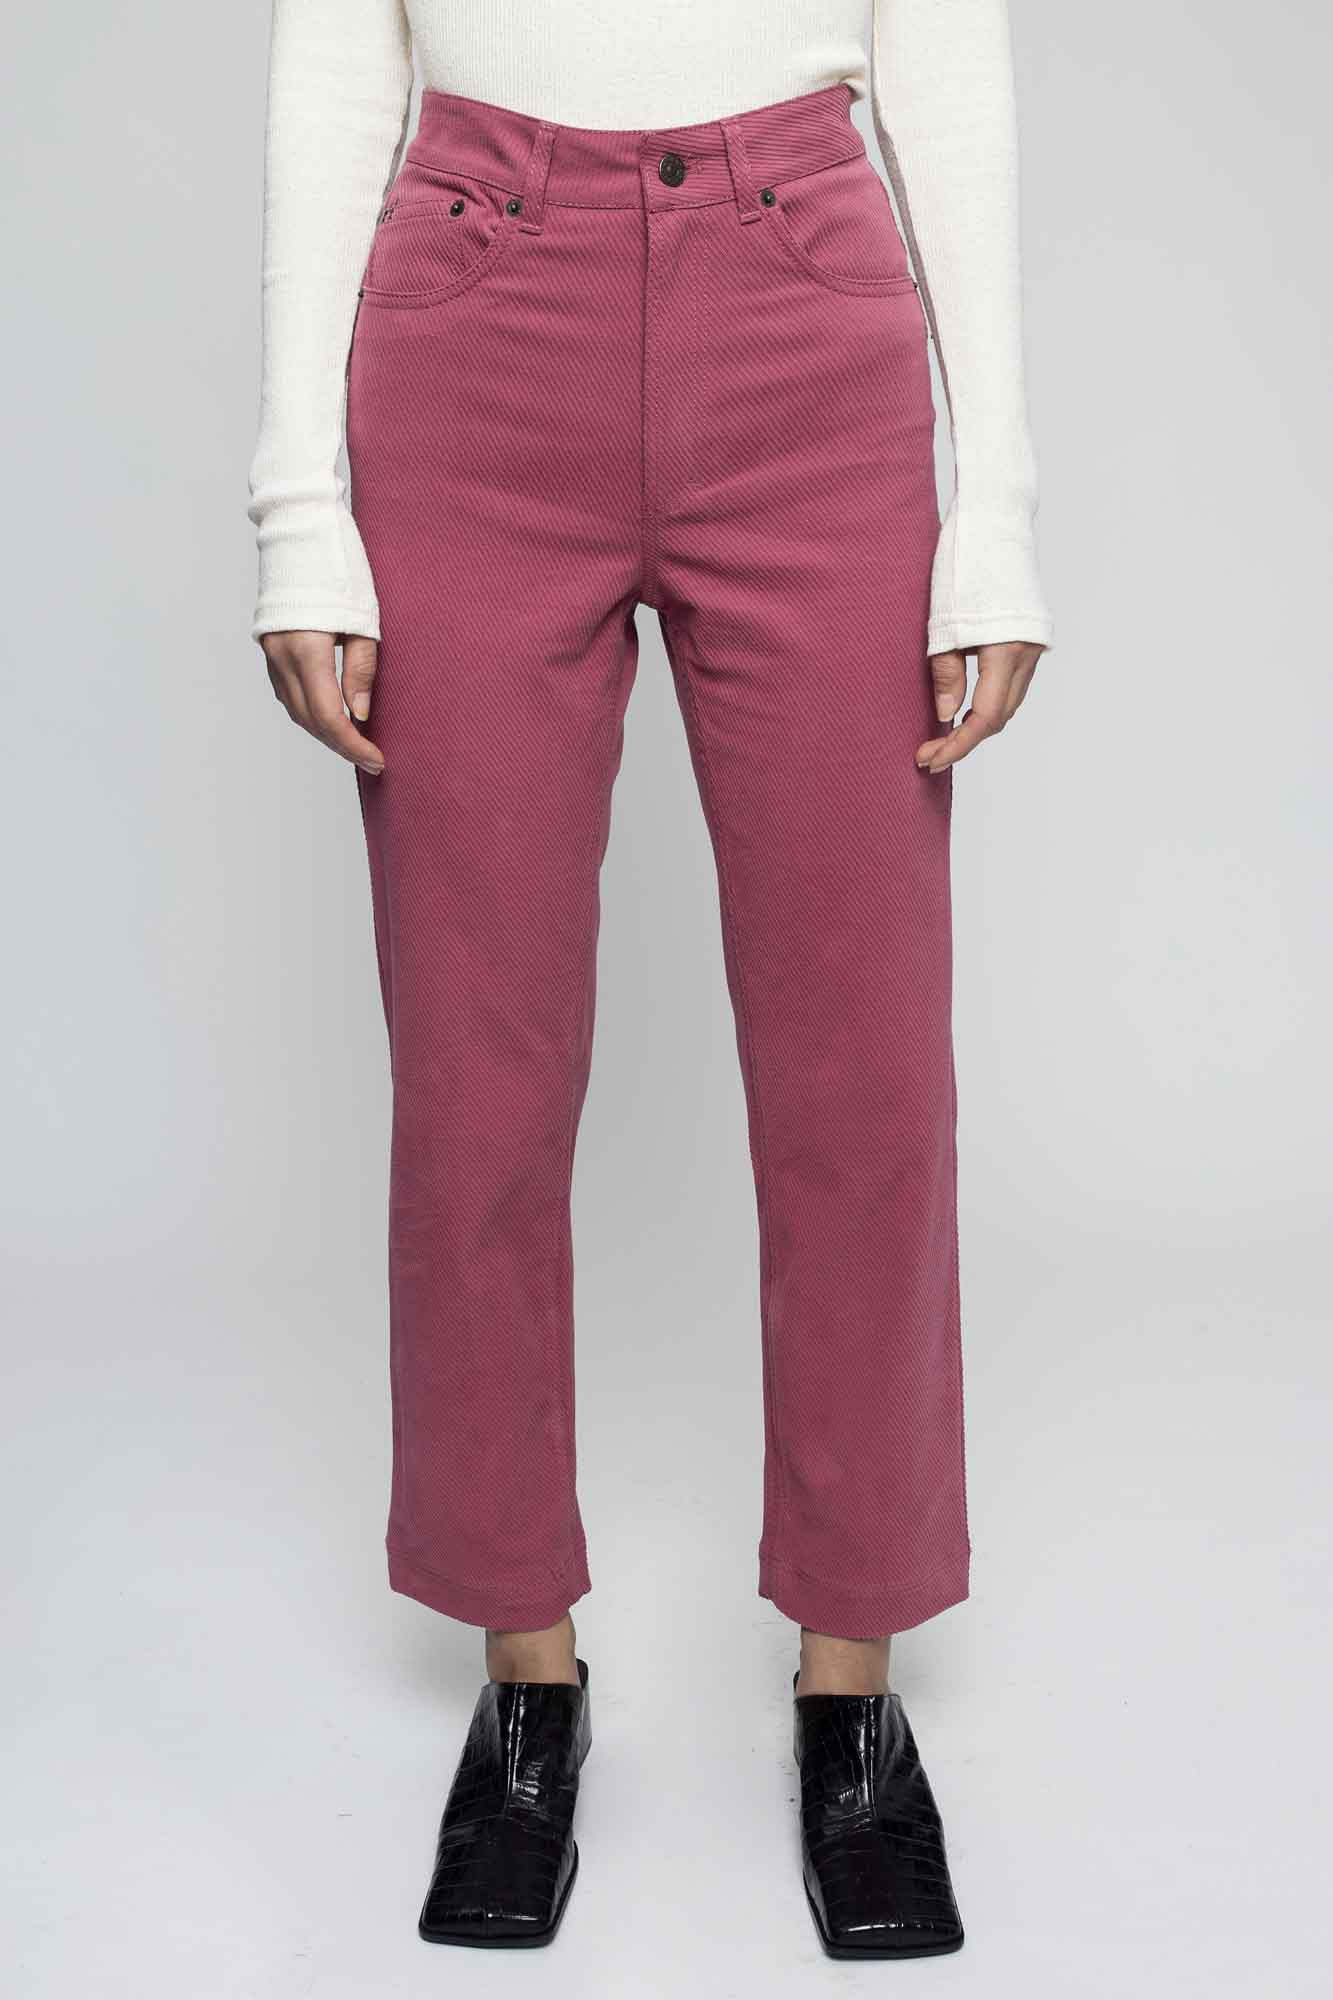 ANTHONY pants pale pink